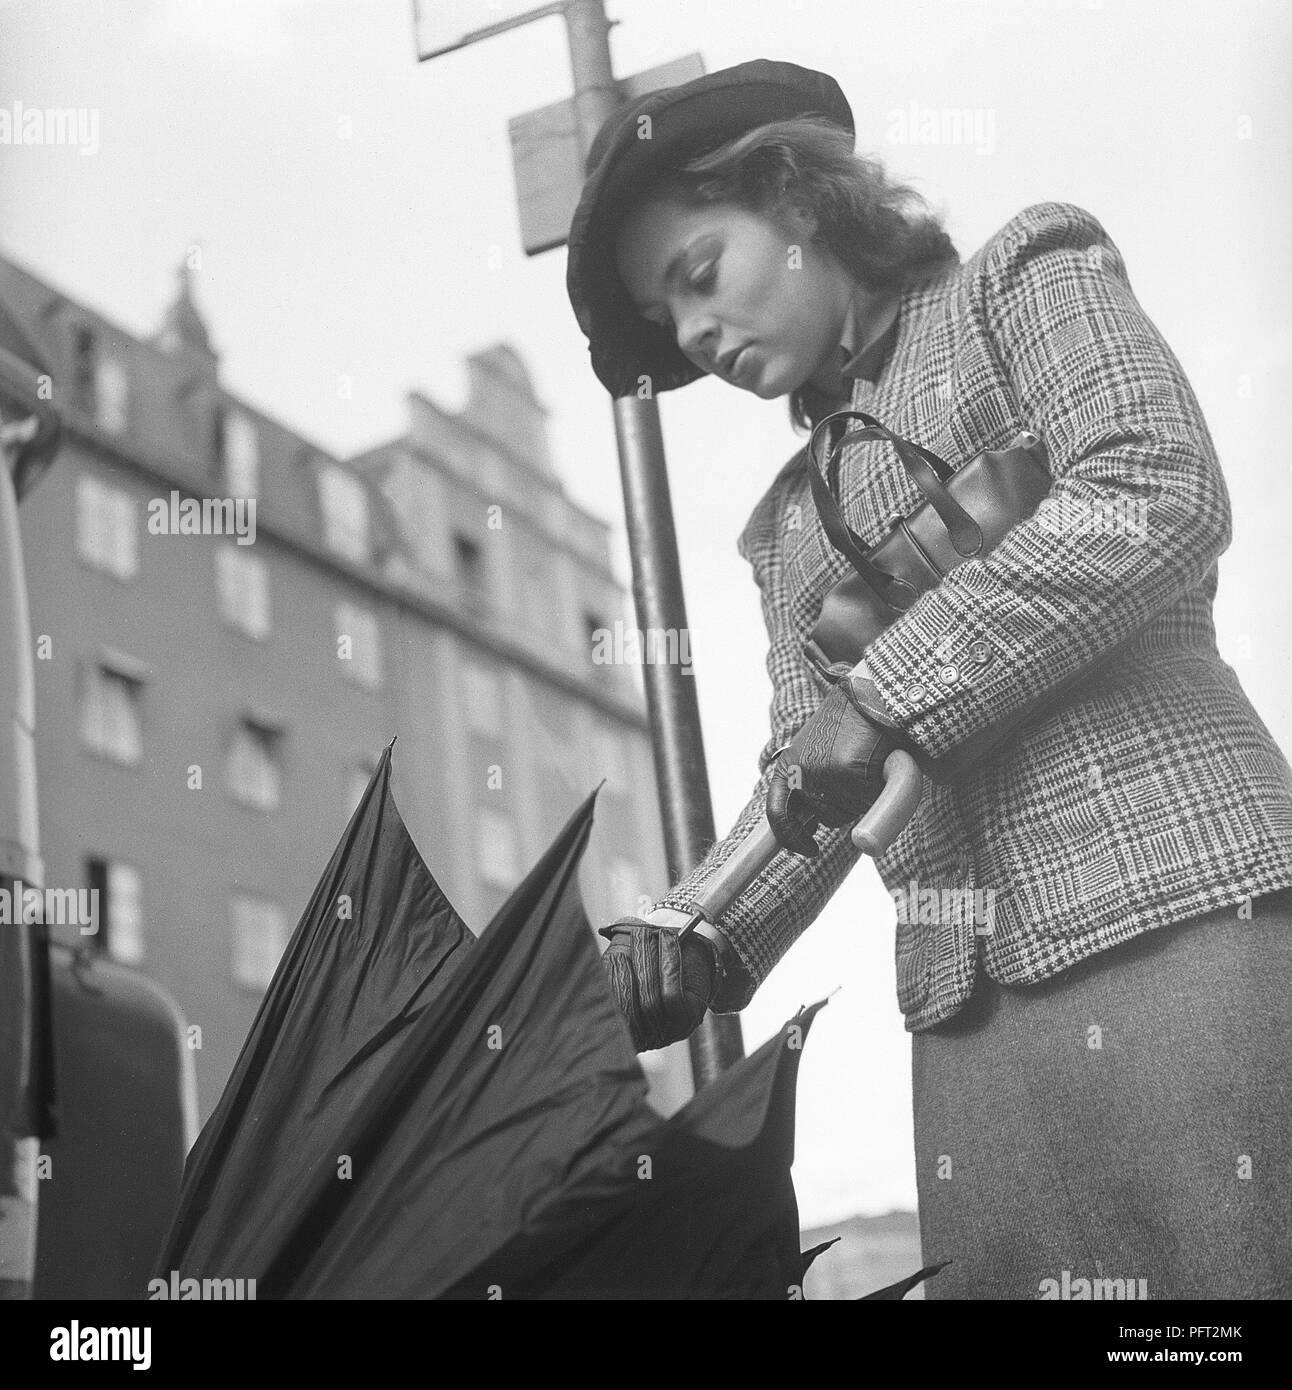 1940s woman in raincoat. Actress Viveca Lindfors, 1920-1995, is waiting at a bus stop and folds her umbrella together when it approaches. She is dressed in 1940s short chequered jacket and skirt, matching hat, handbag and gloves. August 1940. Photo Kristoffersson 159-20 - Stock Image